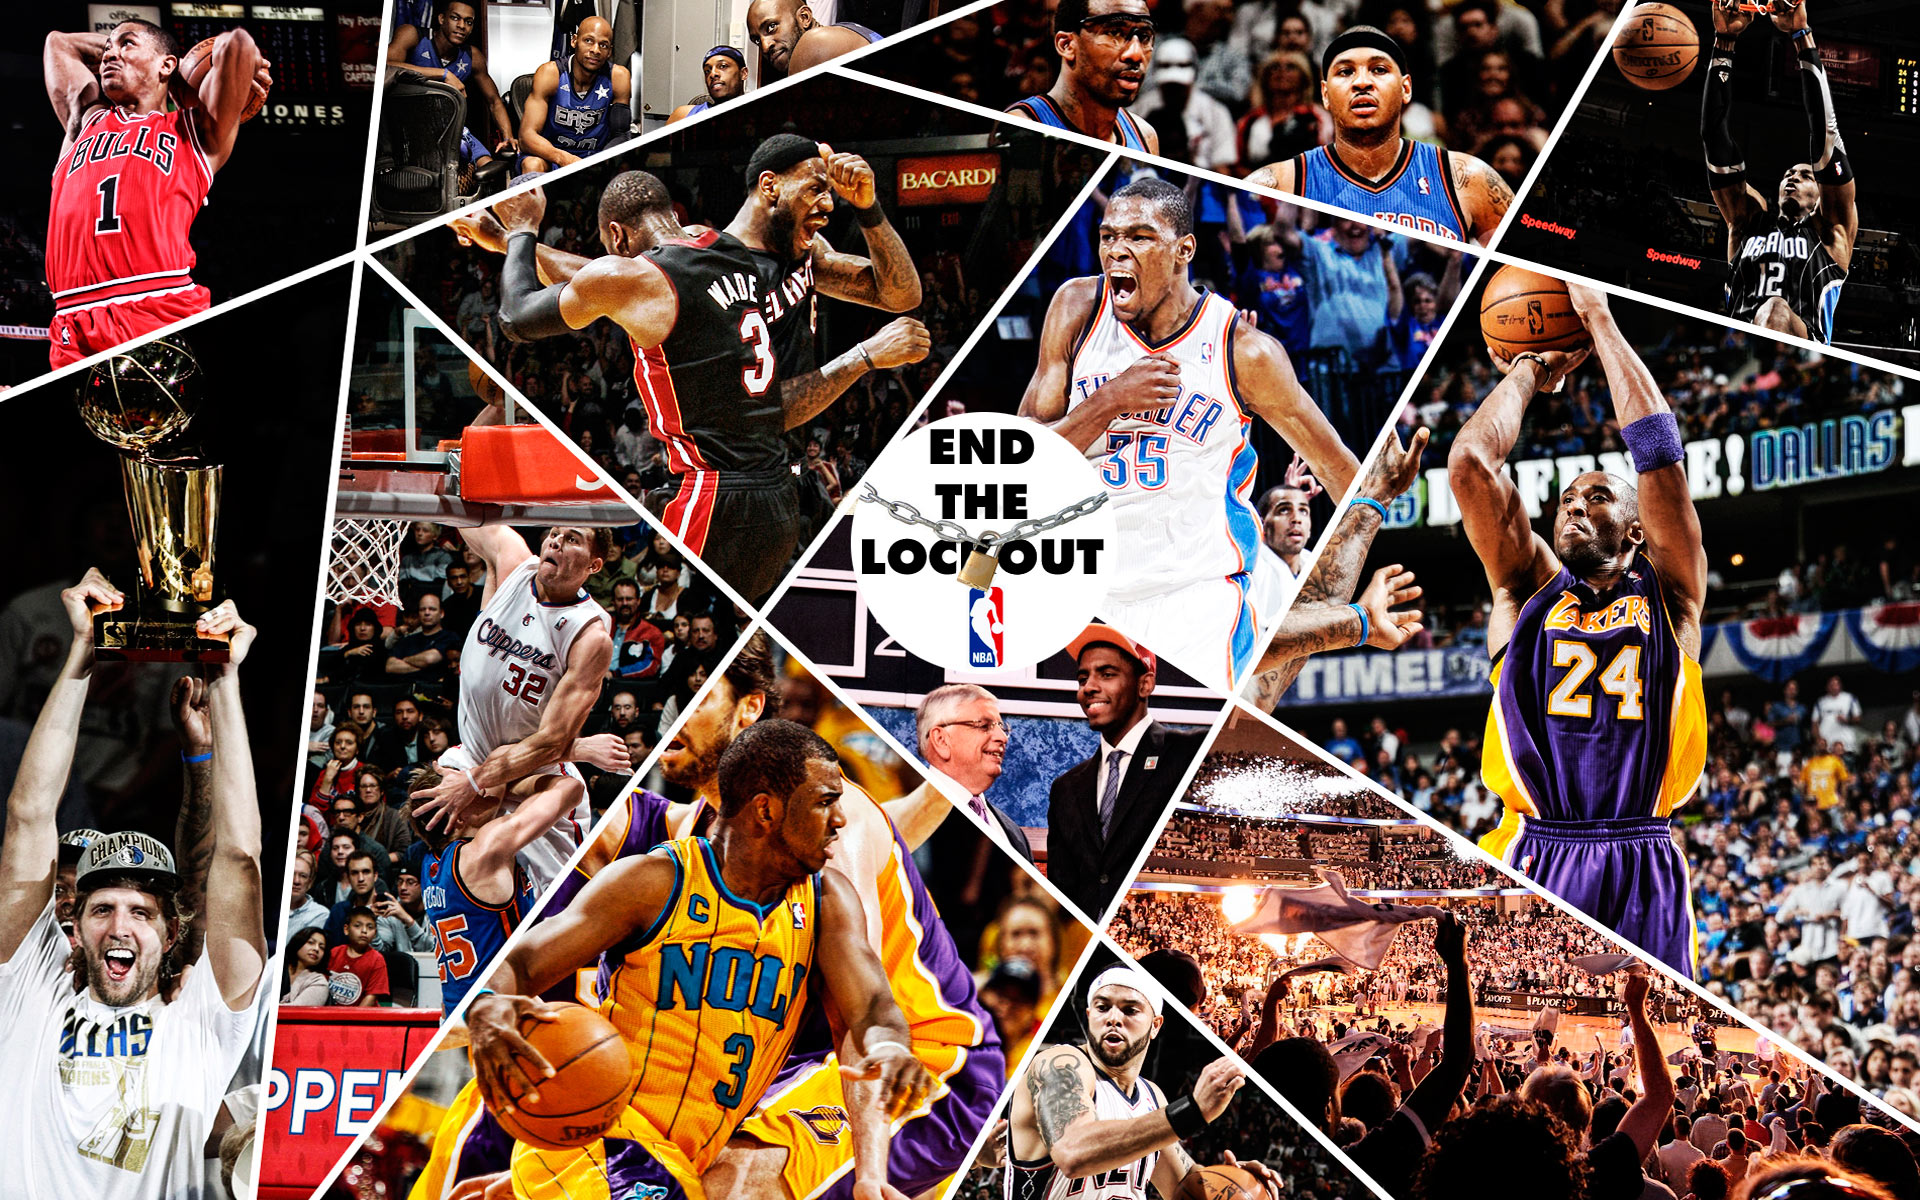 NBA wallpaper 1920x1200